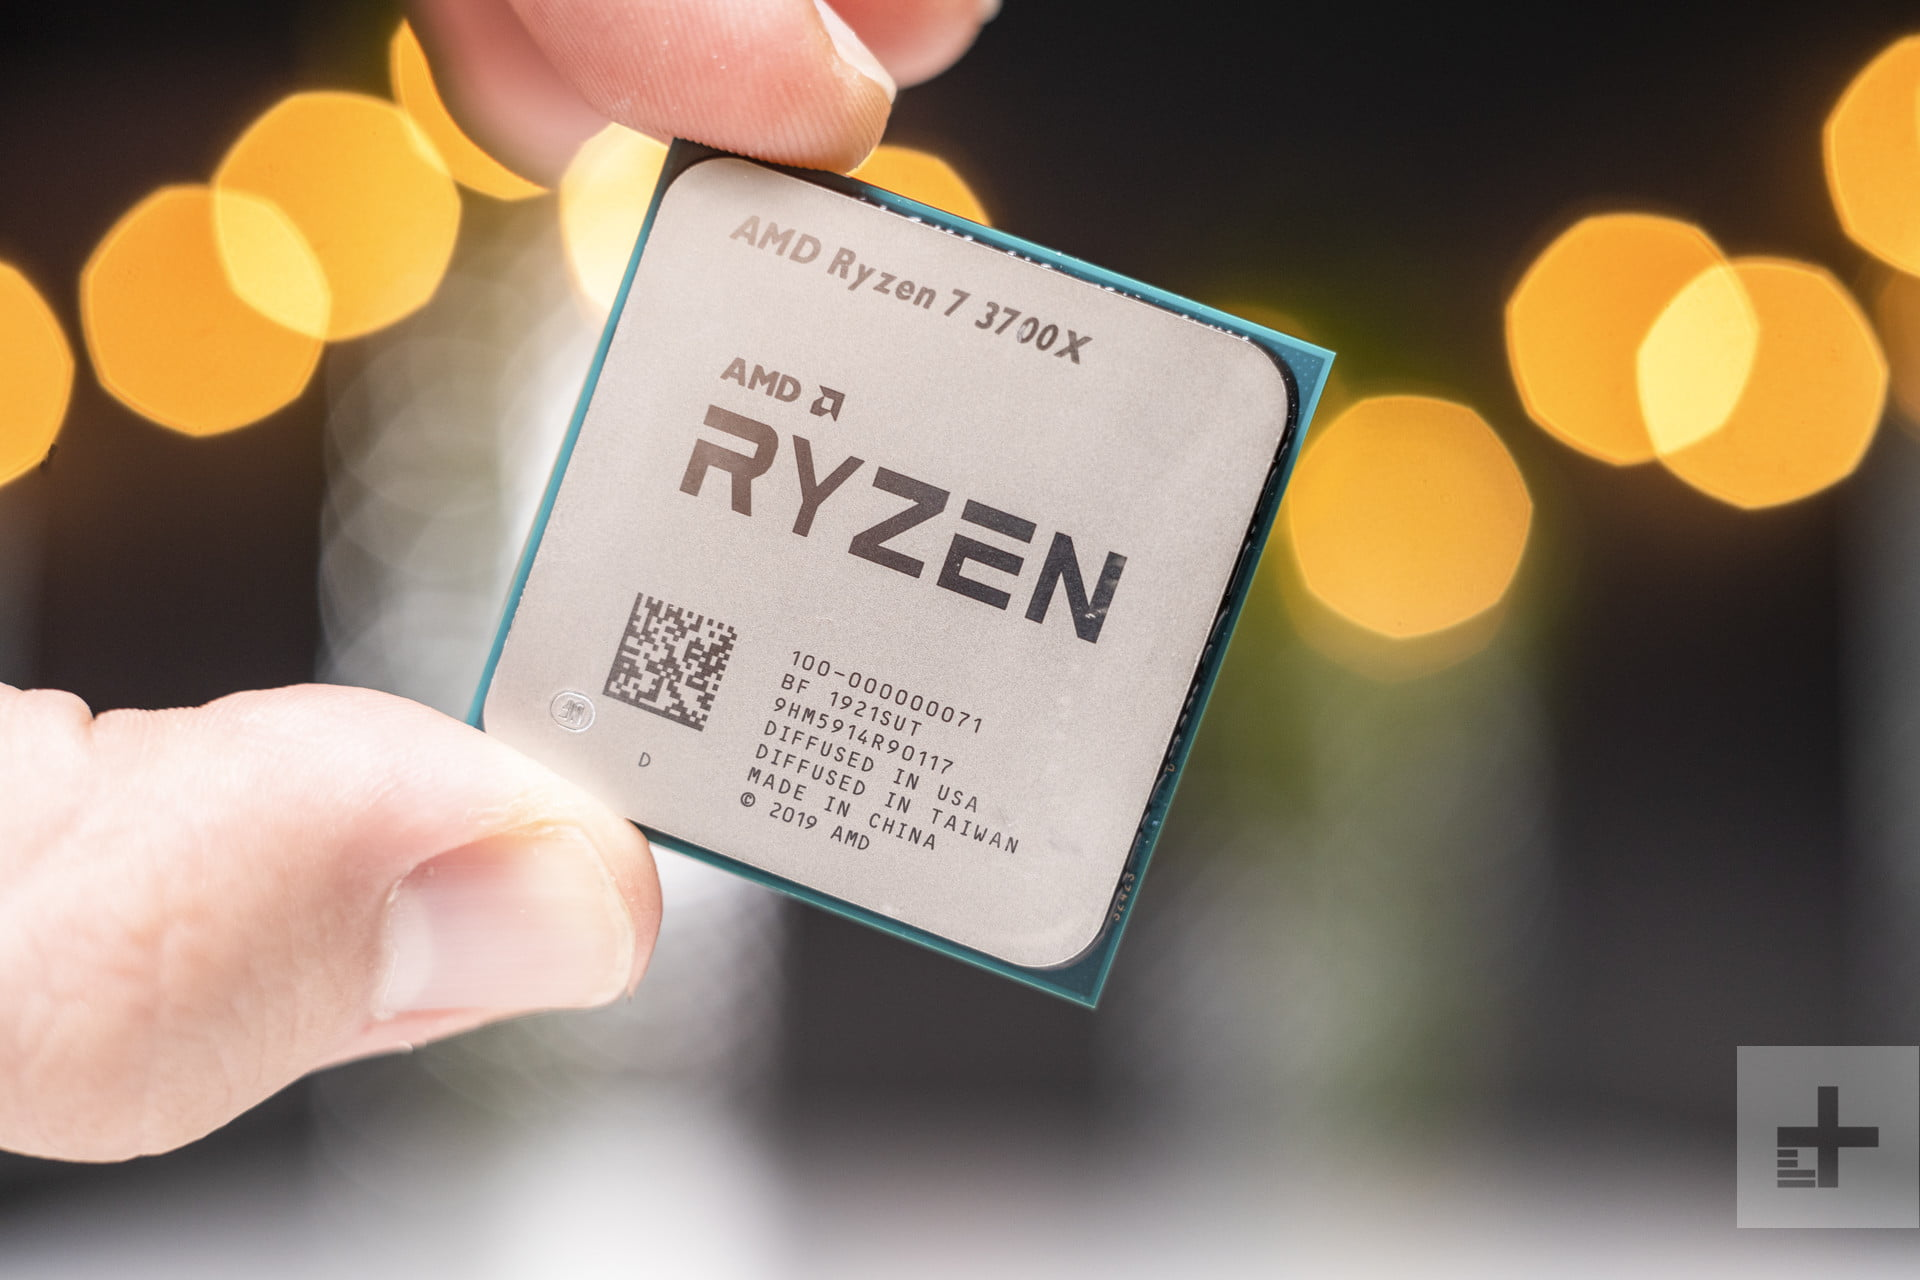 AMD Ryzen 9 3900X Review: The New King Of High-End